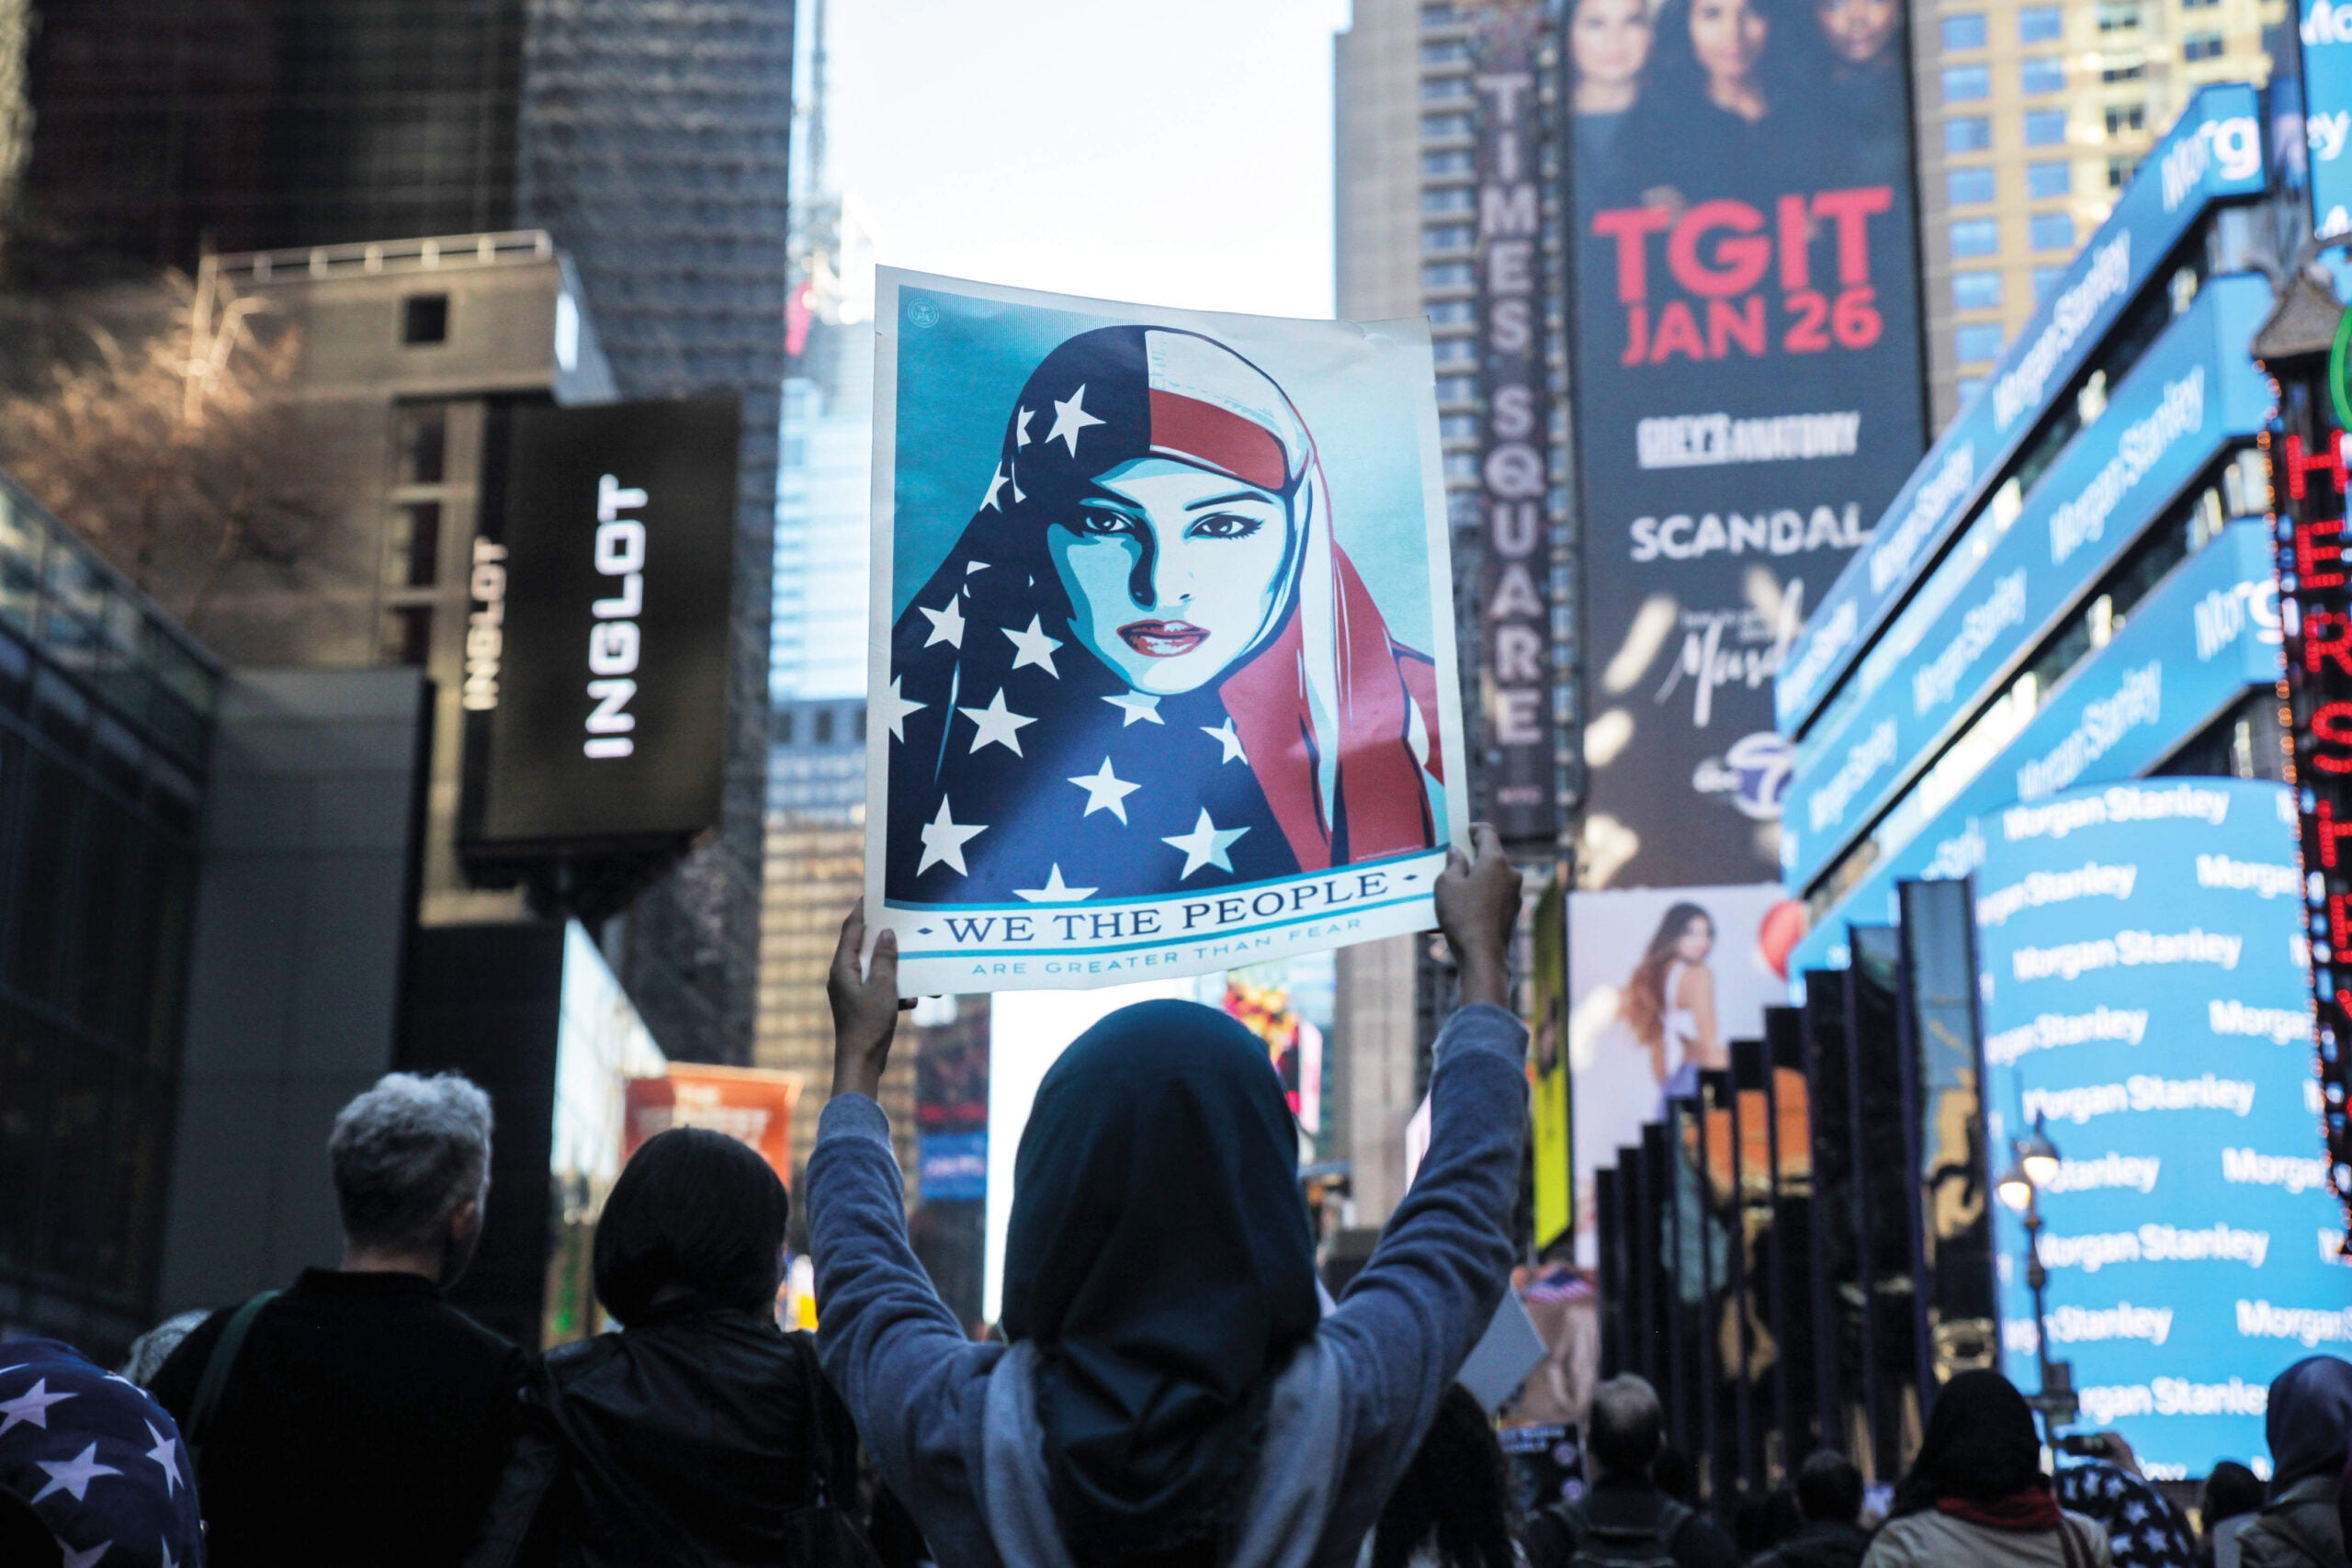 How it feels to be a Muslim in Trump's America